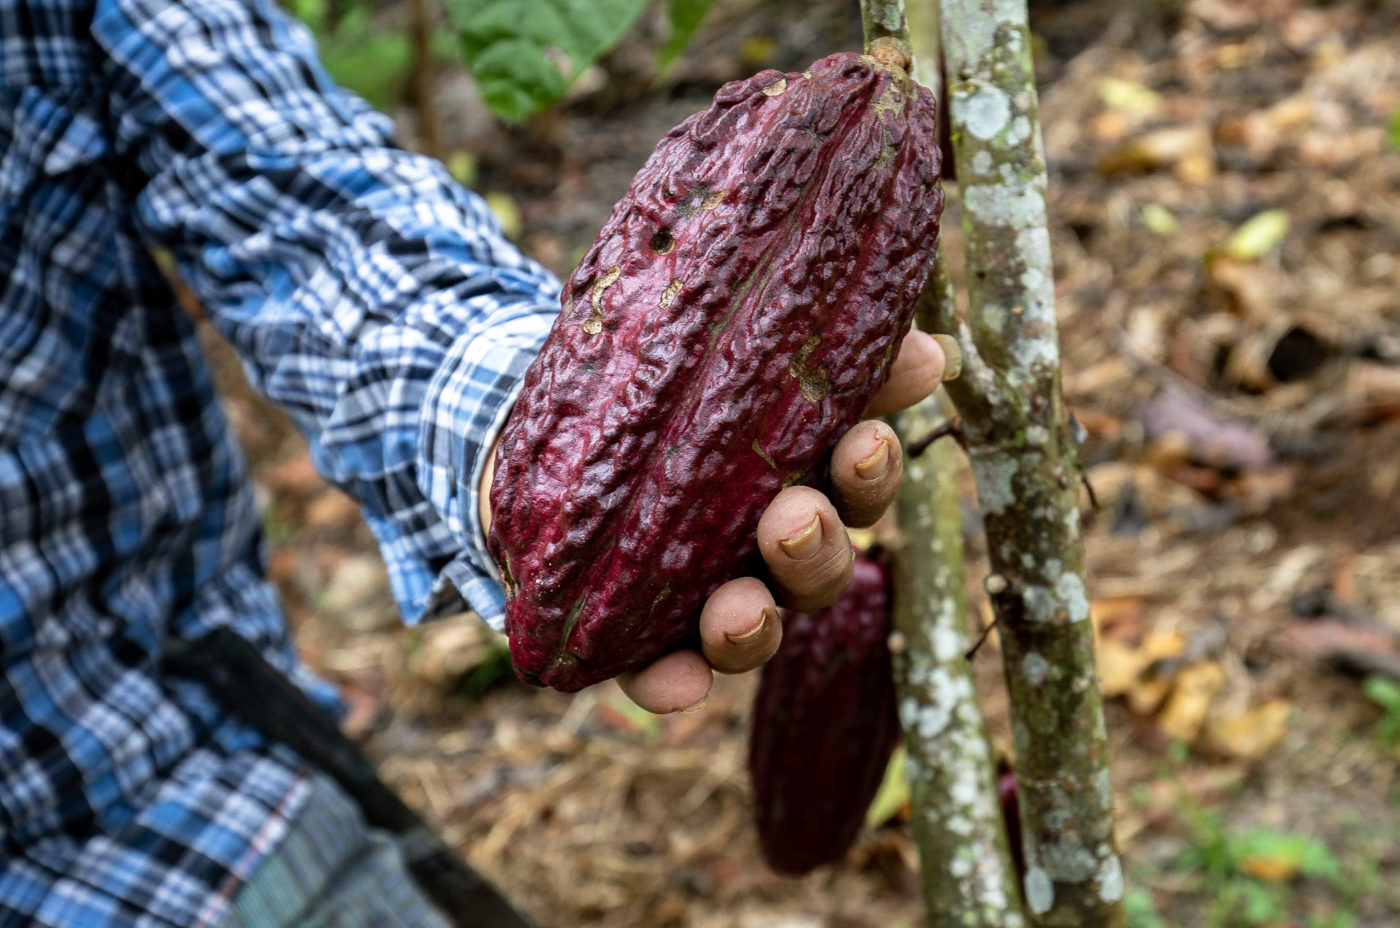 Plant Your Future farmers grow Cocoa in between the timber trees.